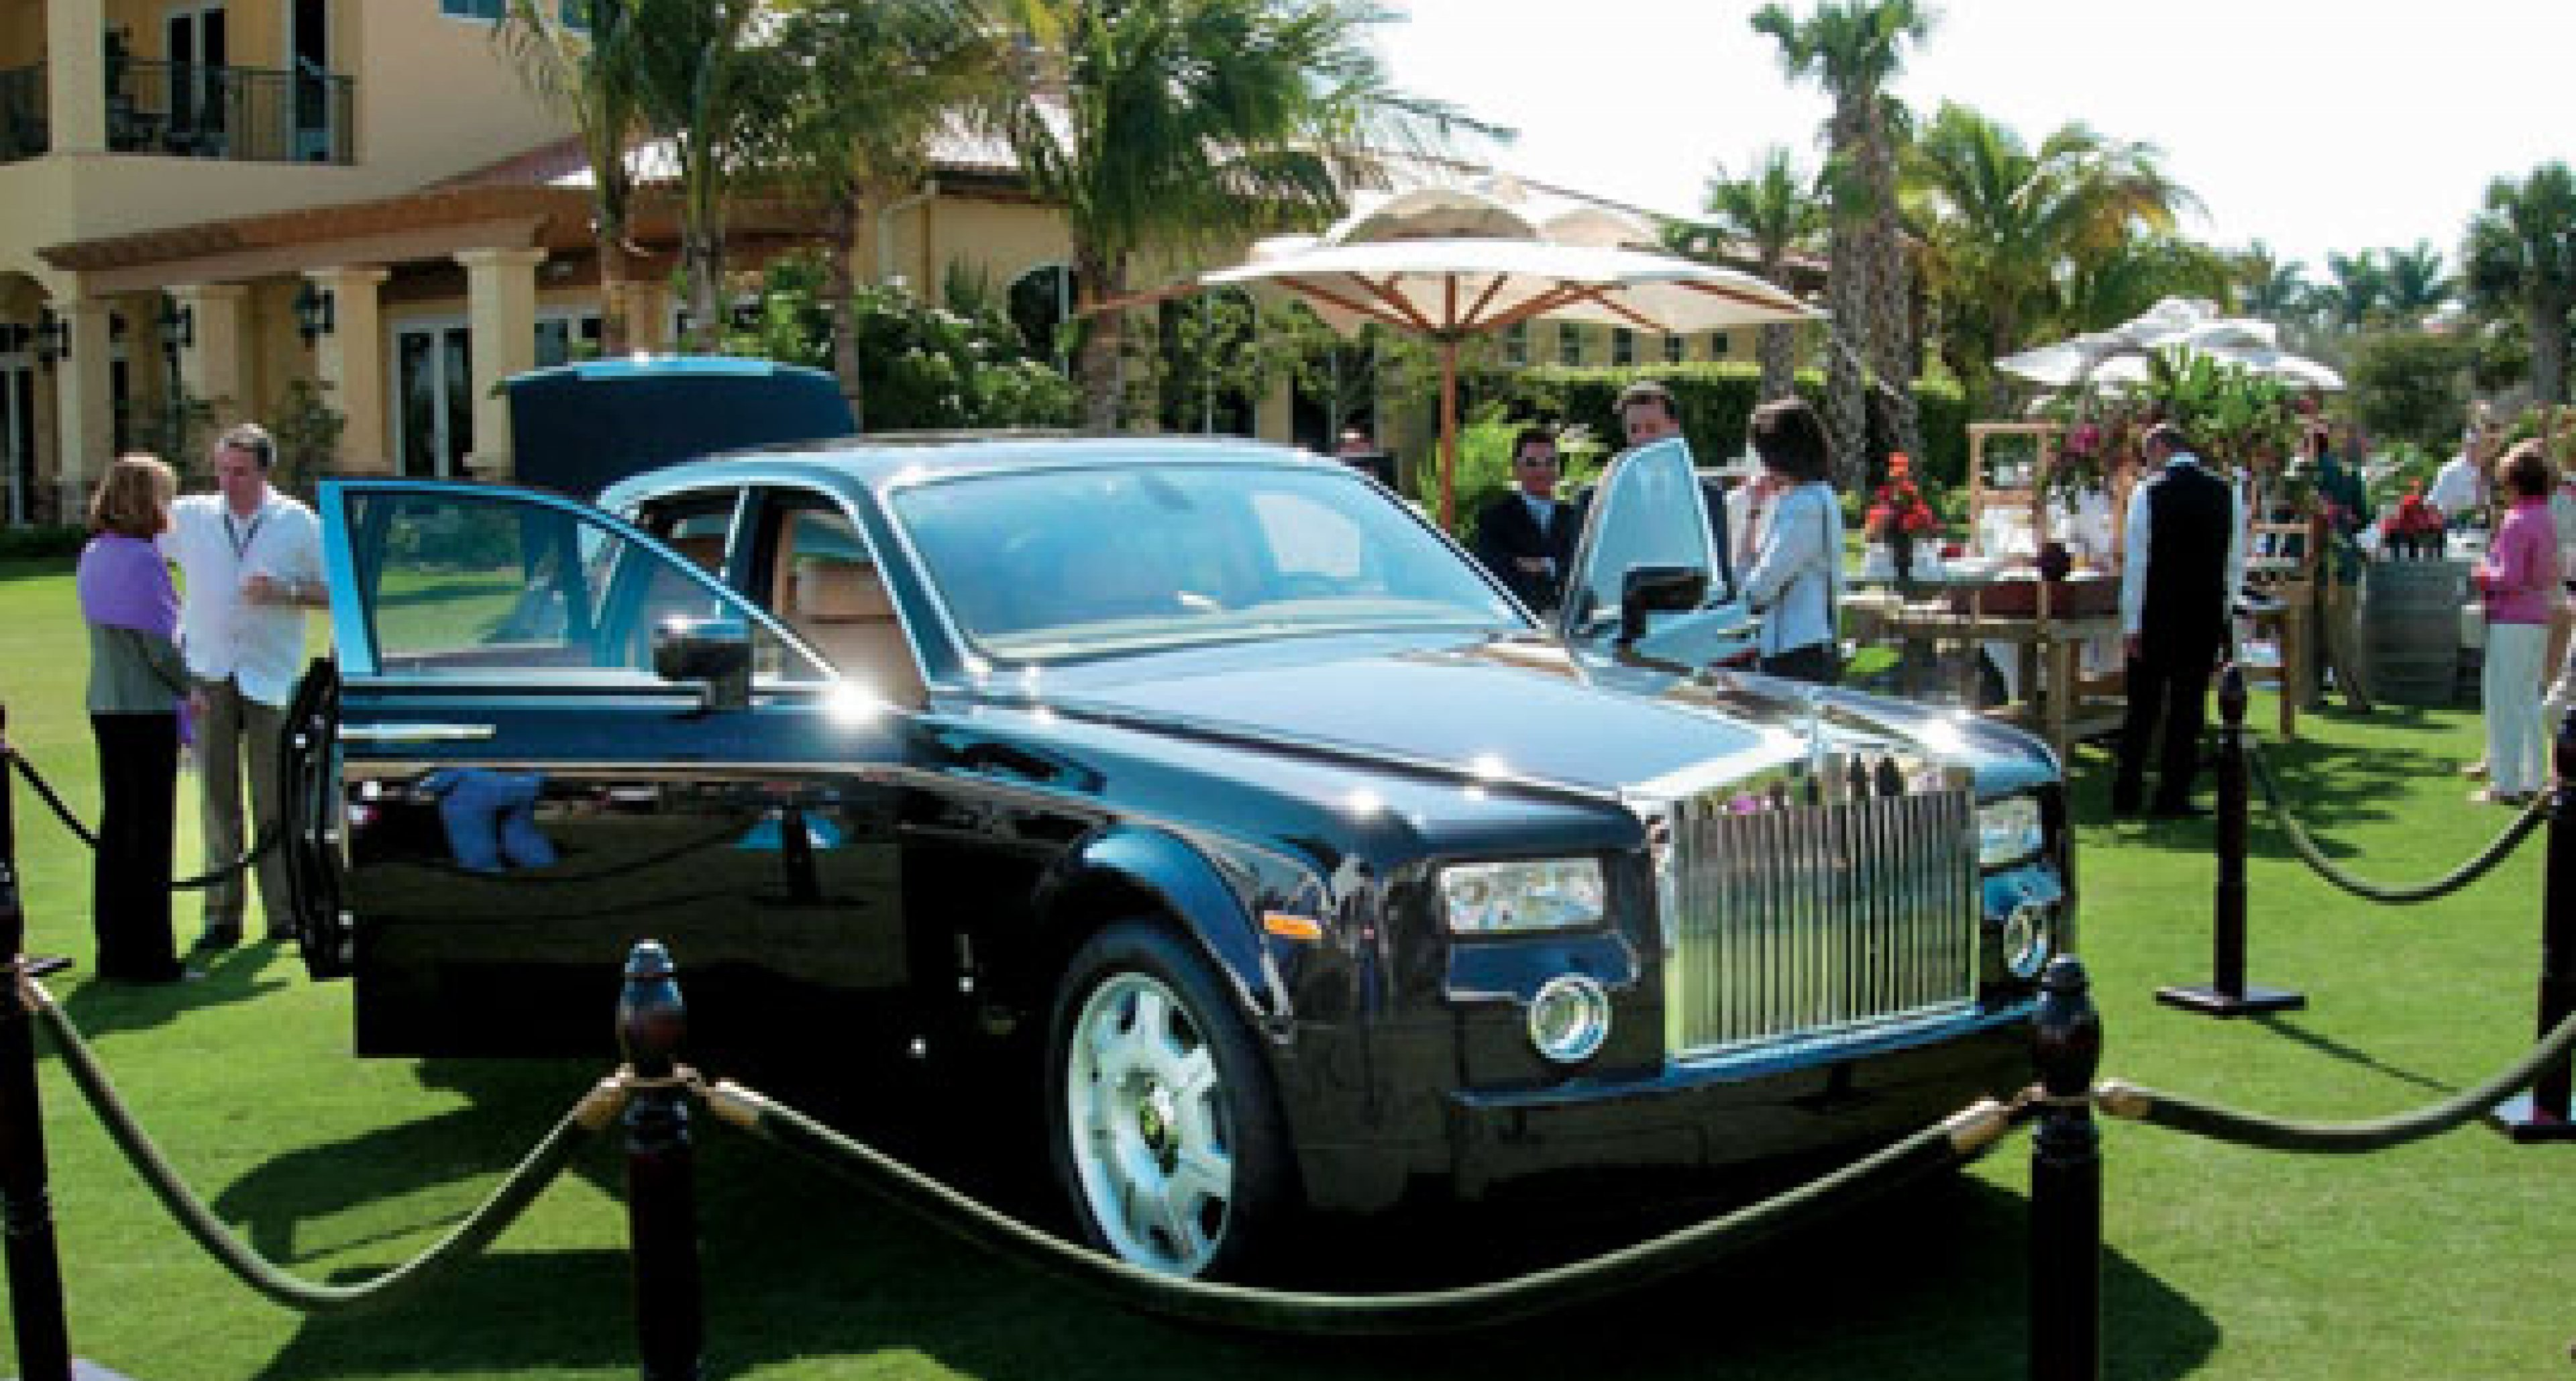 Rolls-Royce Phantom sells for $800,000